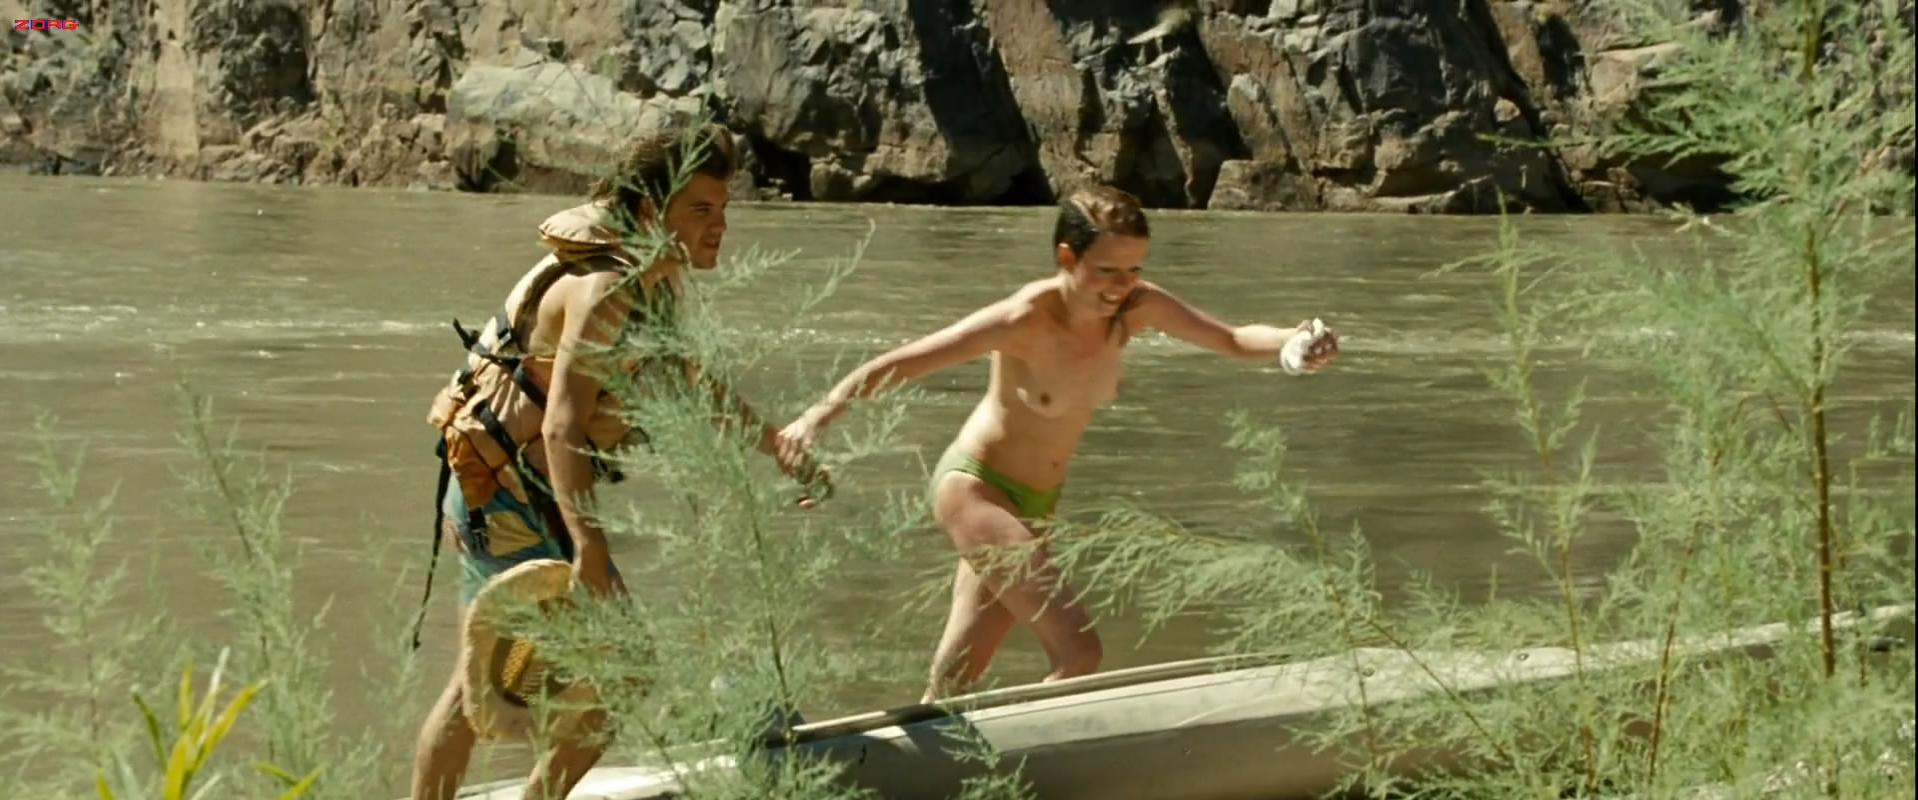 Shall Into the wild nudity